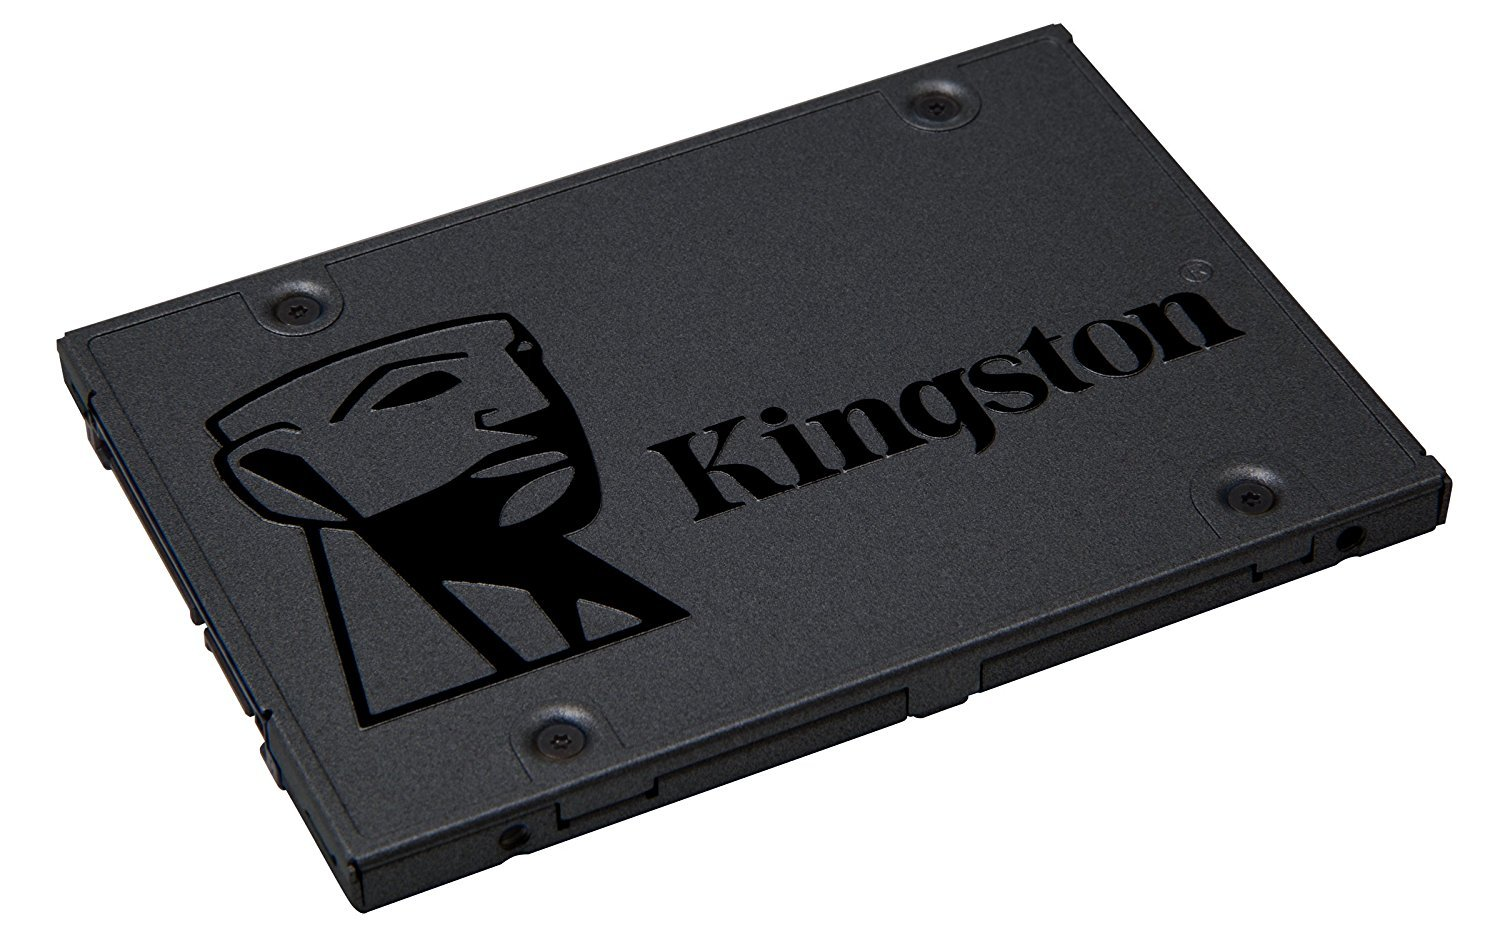 Kingston A400 SSD 240GB SATA 3 2.5 Solid State Drive SA400S37/240G - Increase Performance